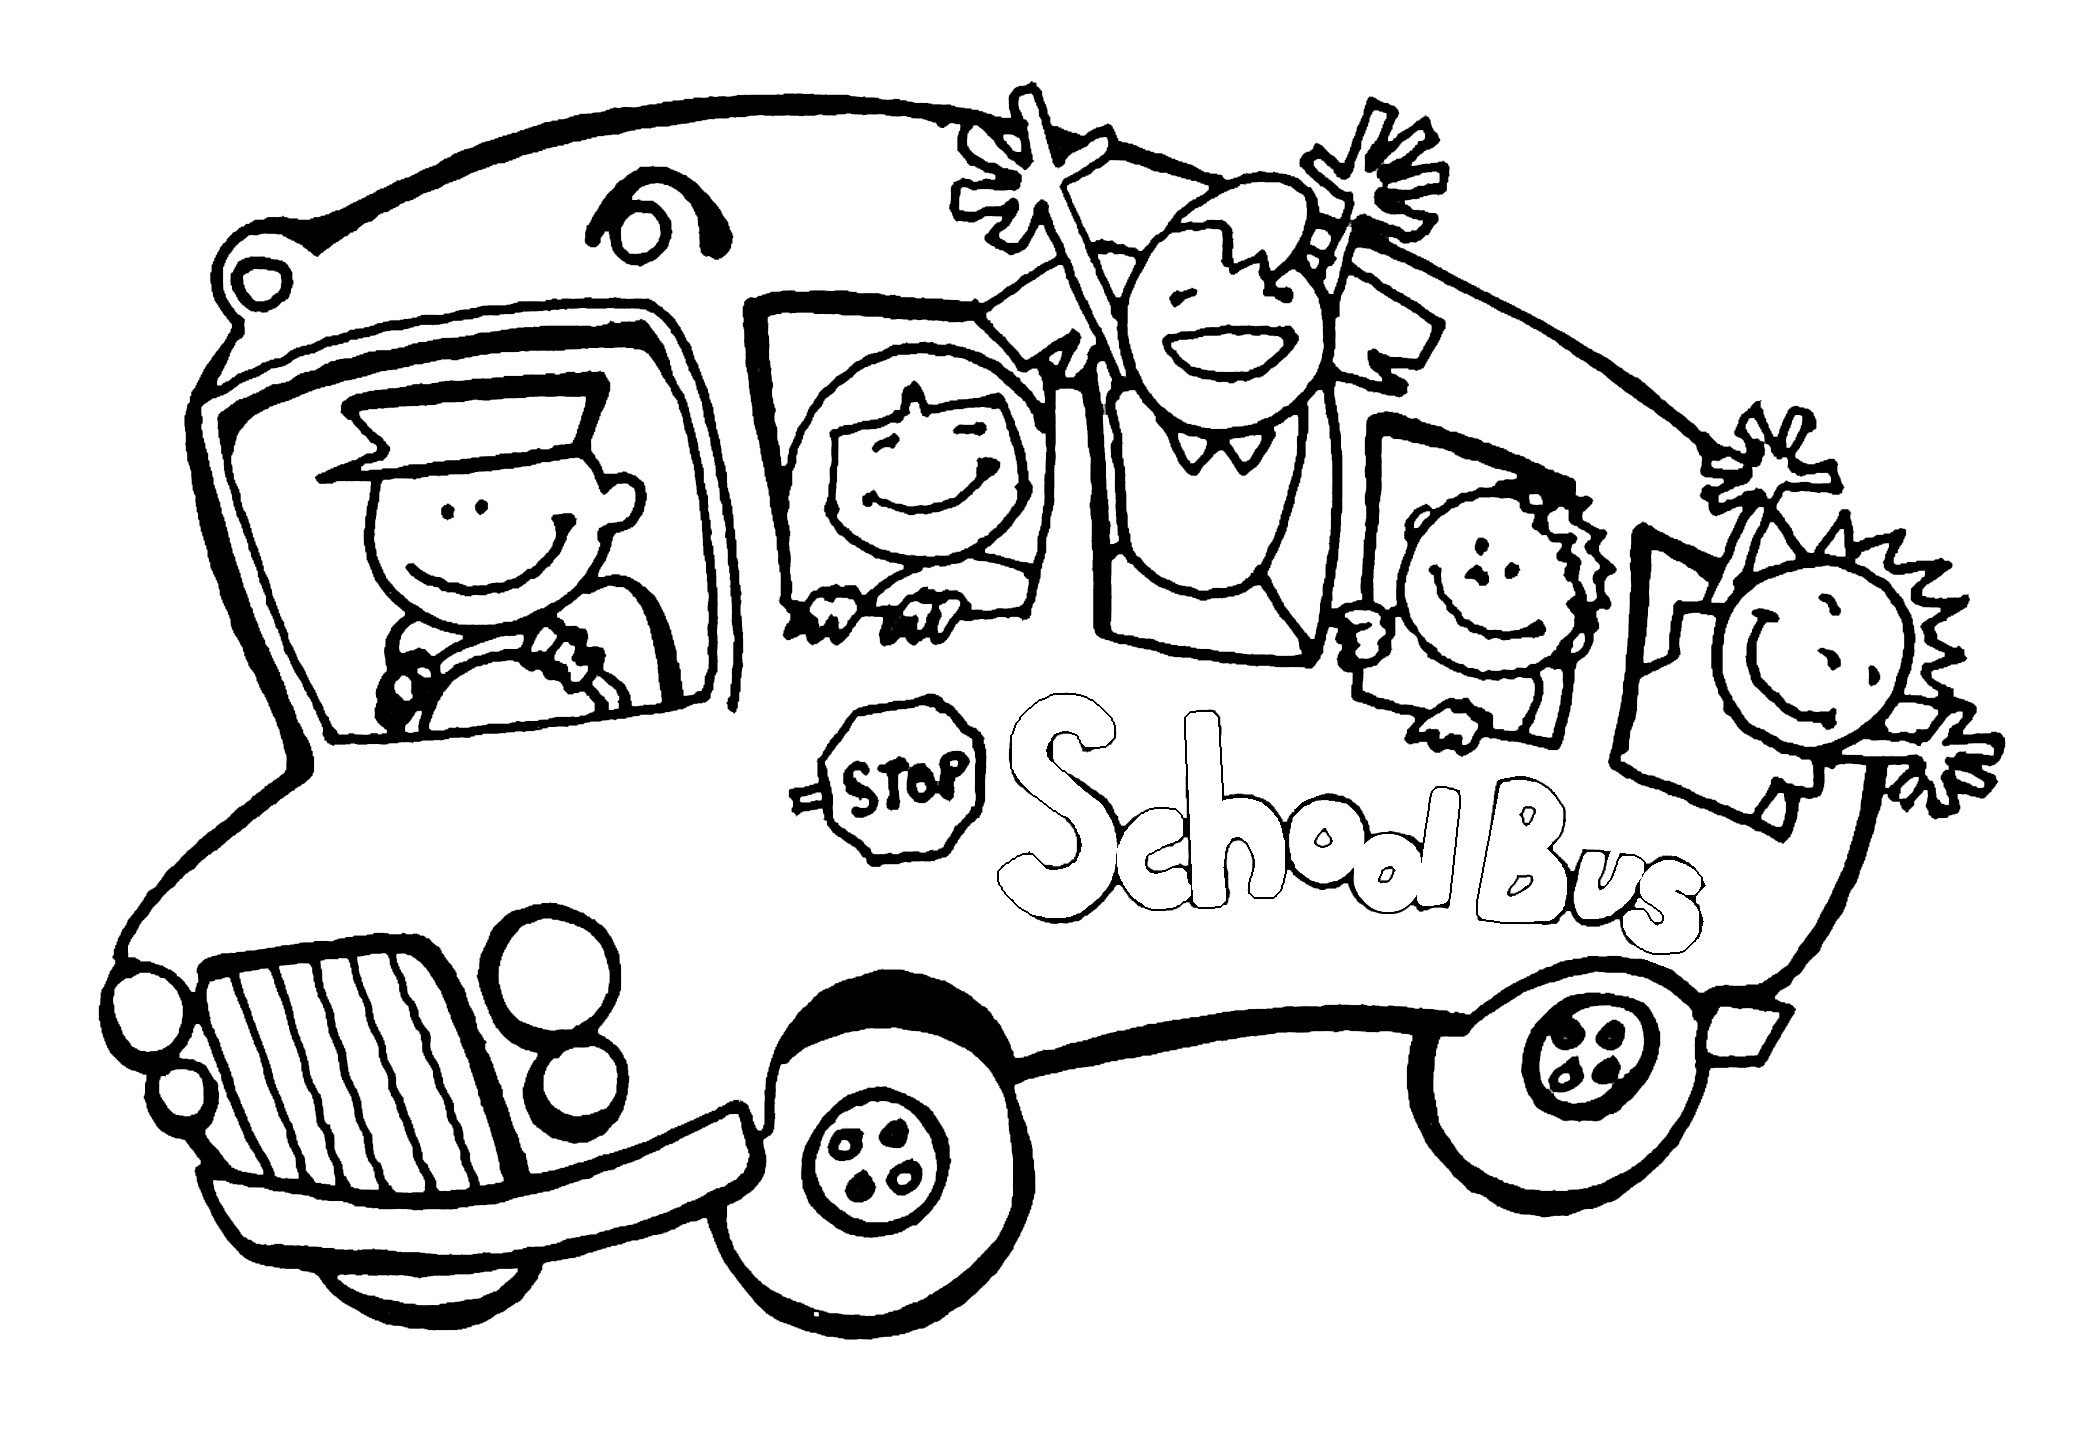 Coloring Pages: First Of School Coloring For Kindergarten Sizable - Free Printable First Day Of School Coloring Pages